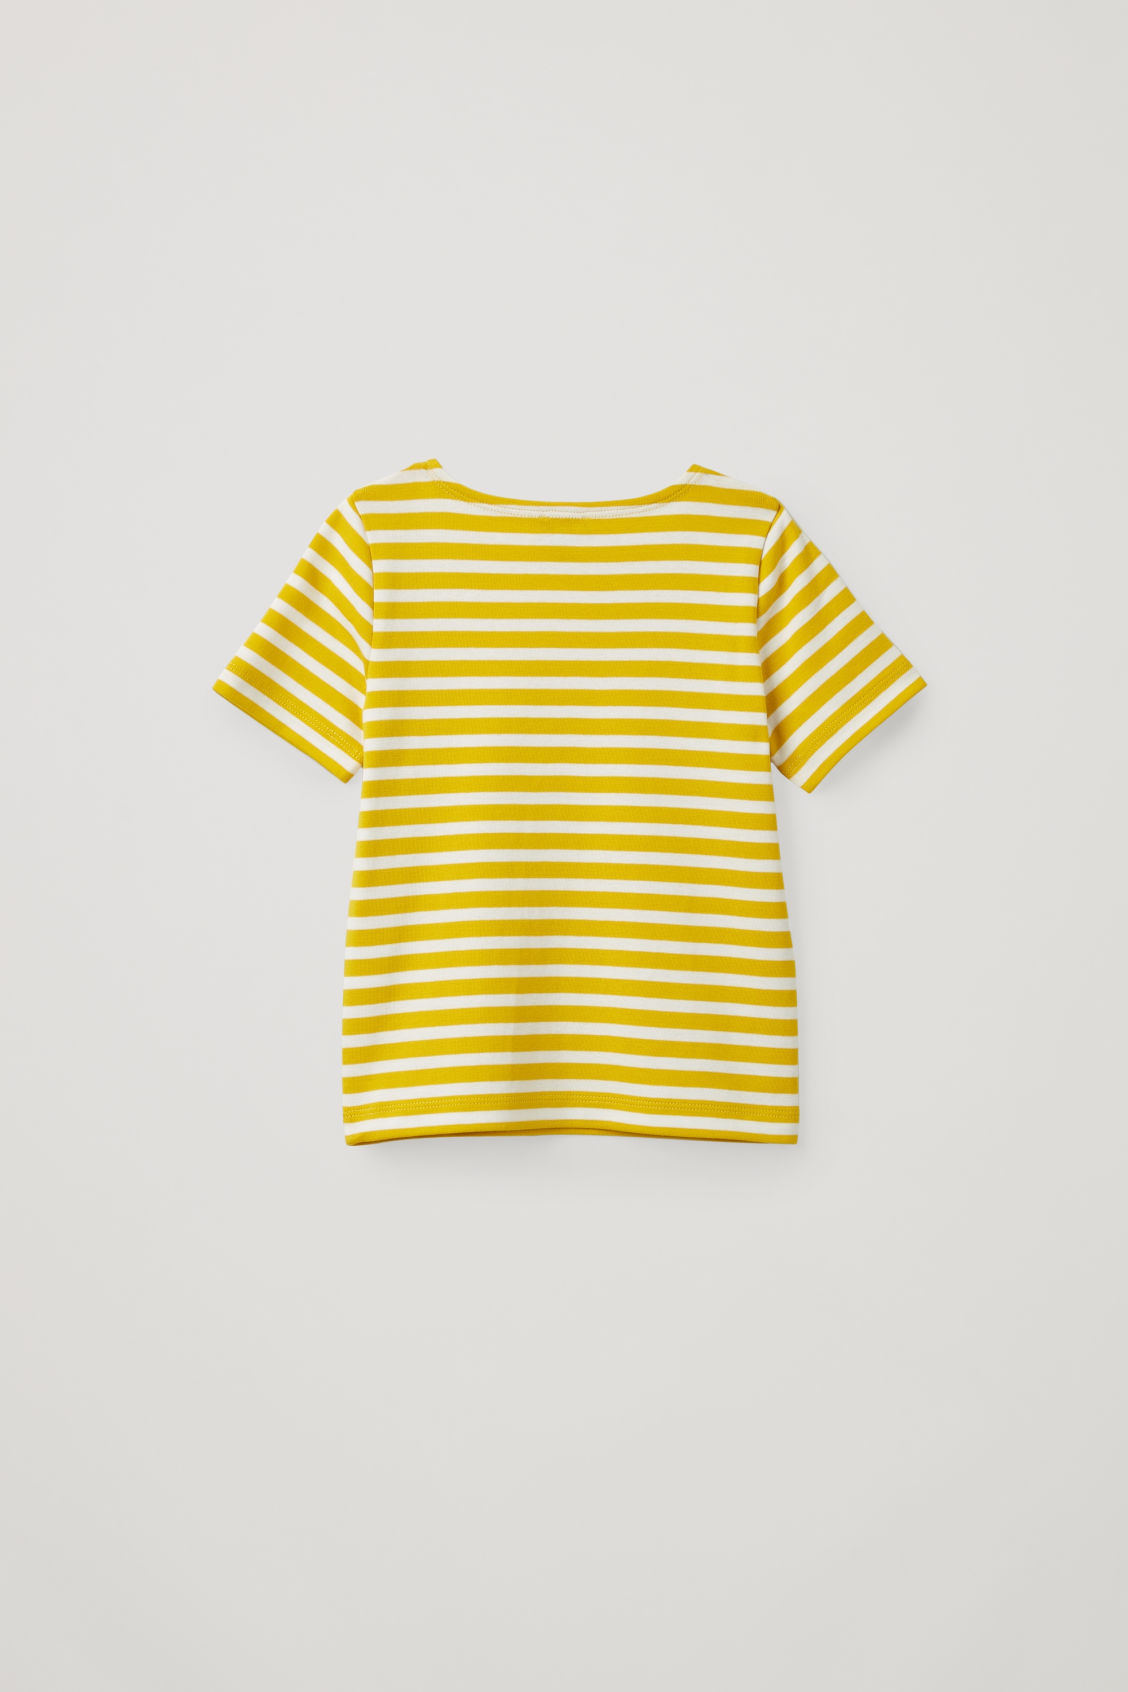 Side image of Cos striped short-sleeved t-shirt in yellow